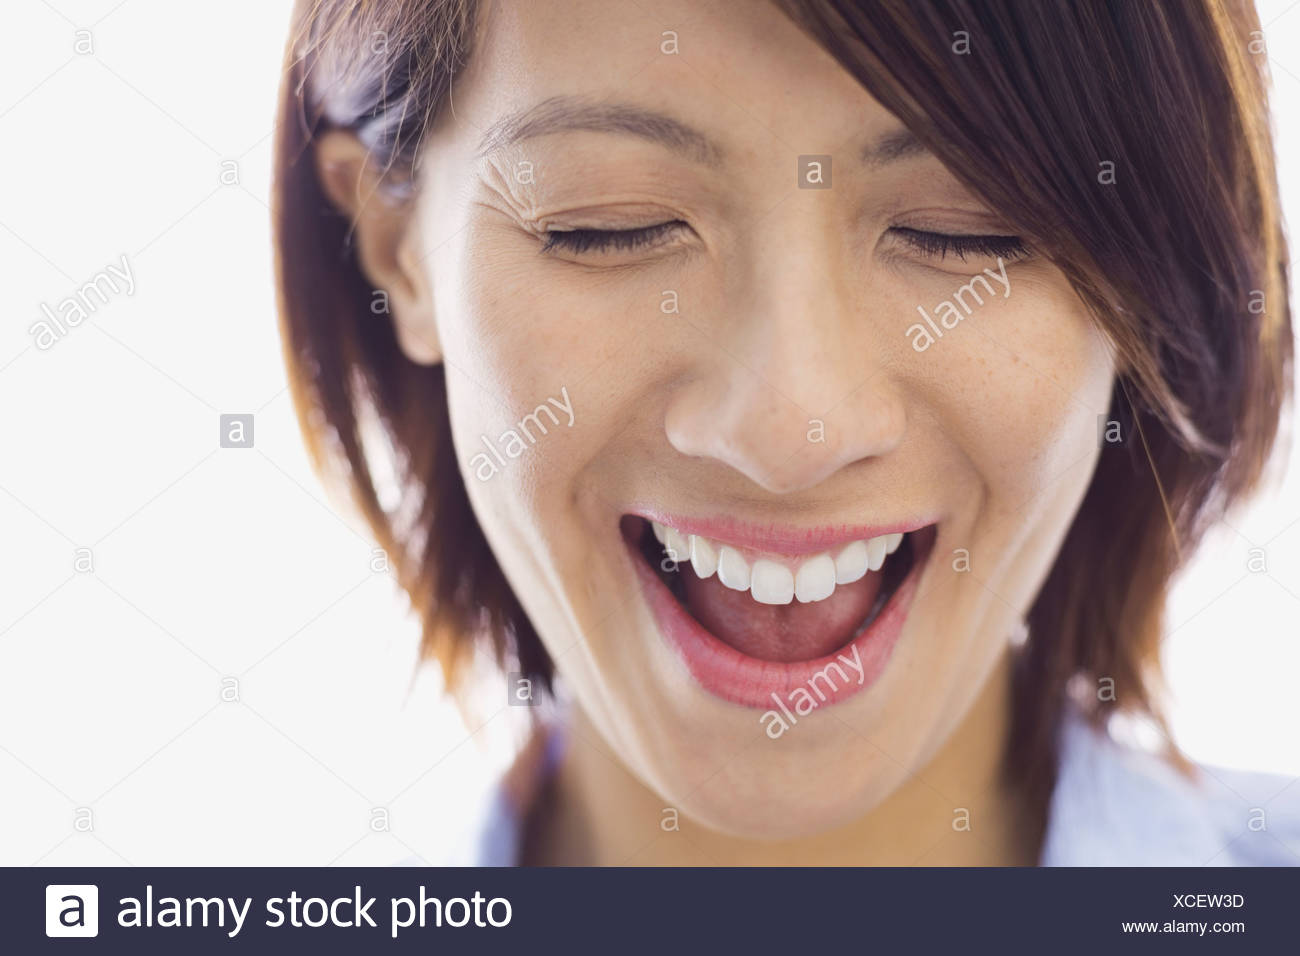 Close-up of woman laughing - Stock Image